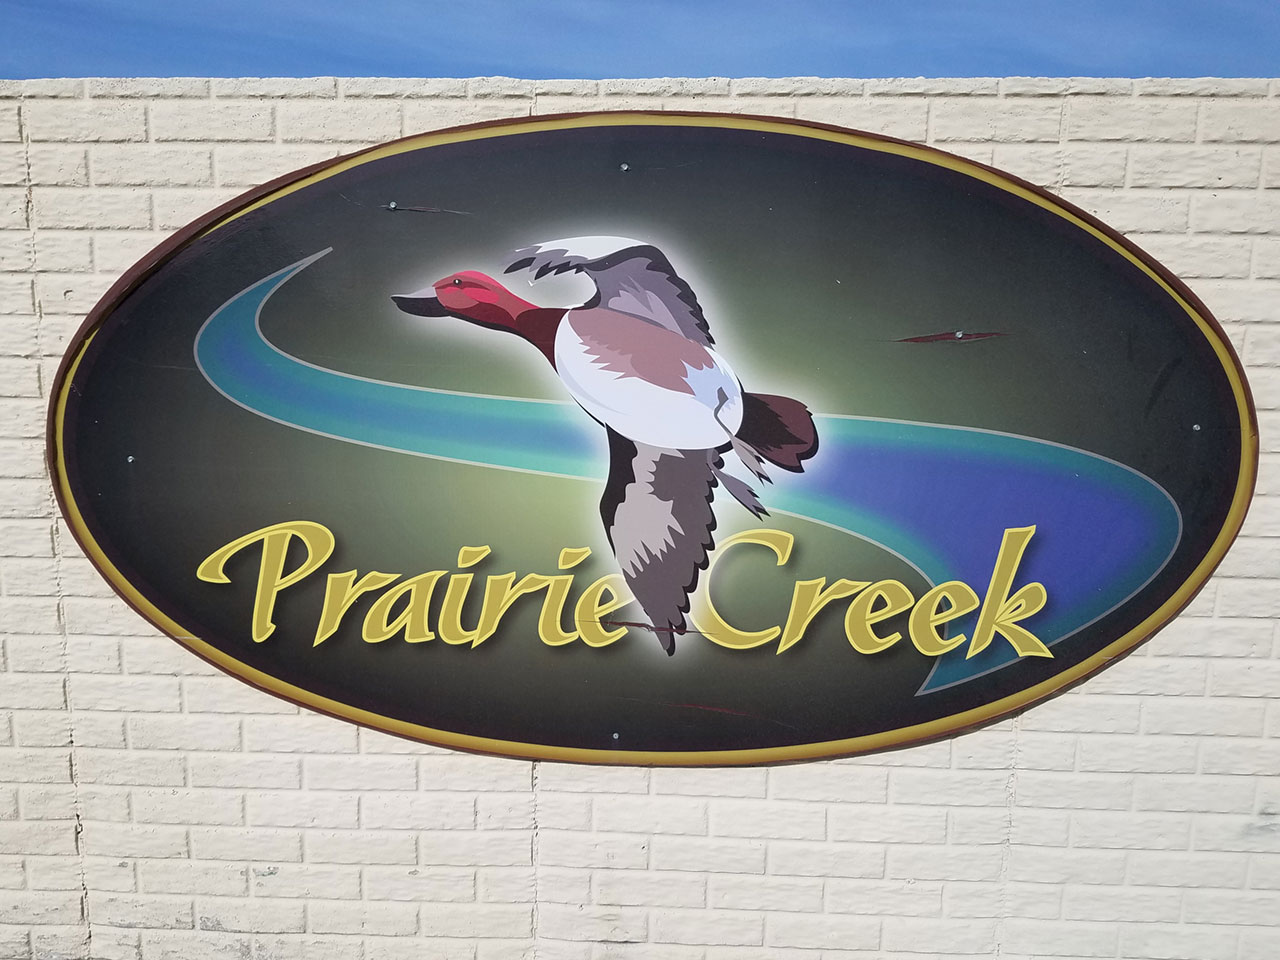 Prairie Creek community